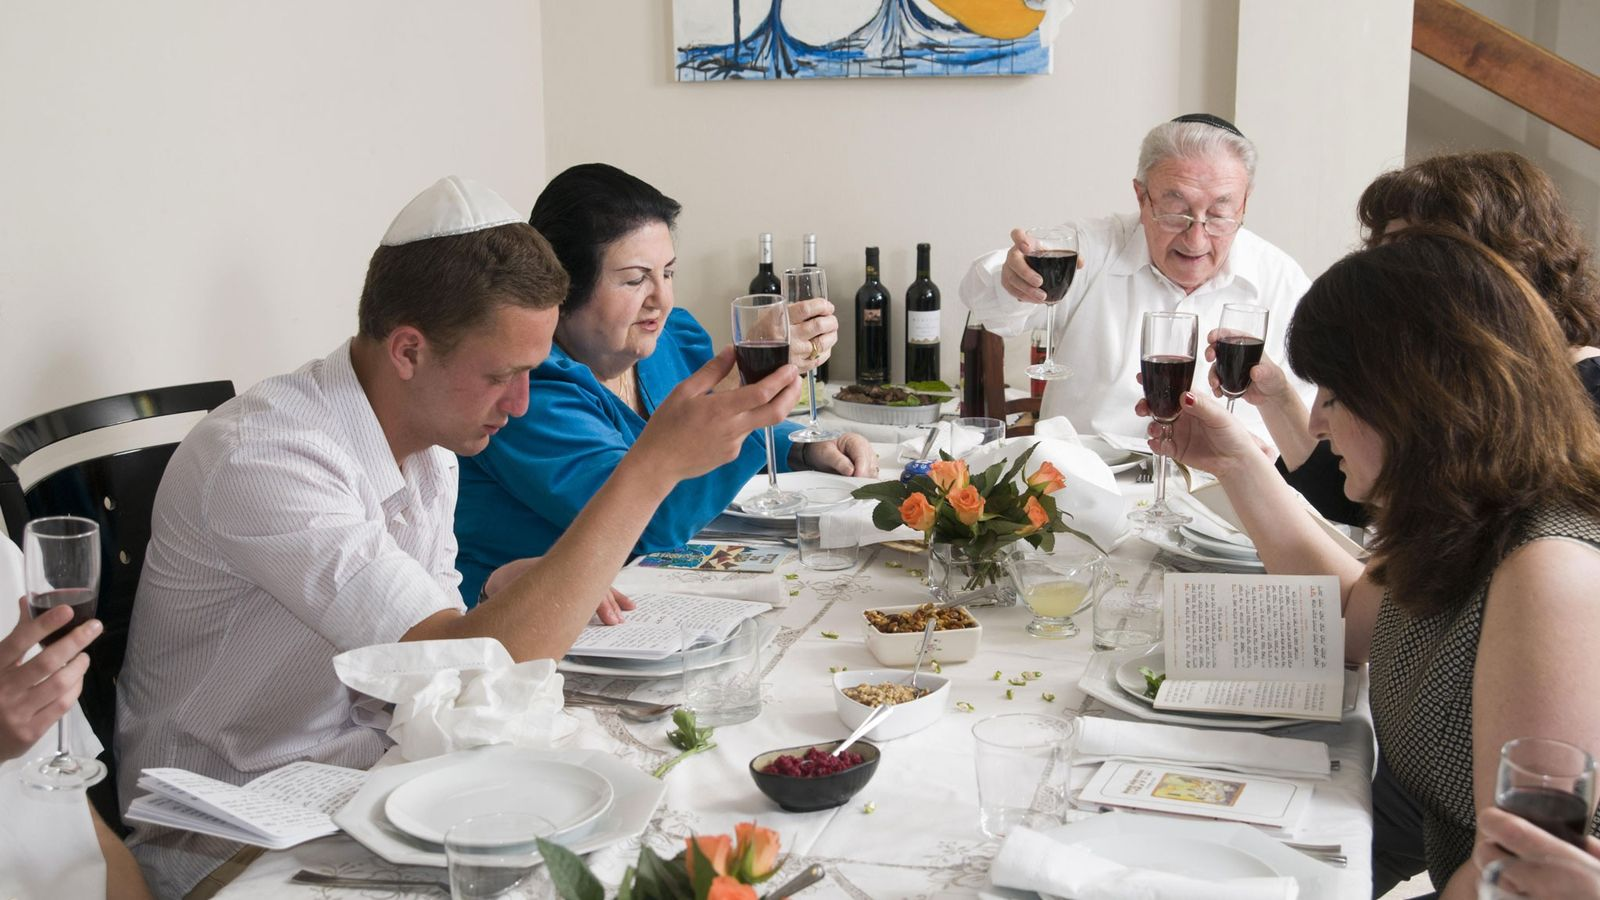 A family gathers for a seder, the ritual meal that celebrates Moses freeing the Israelites.